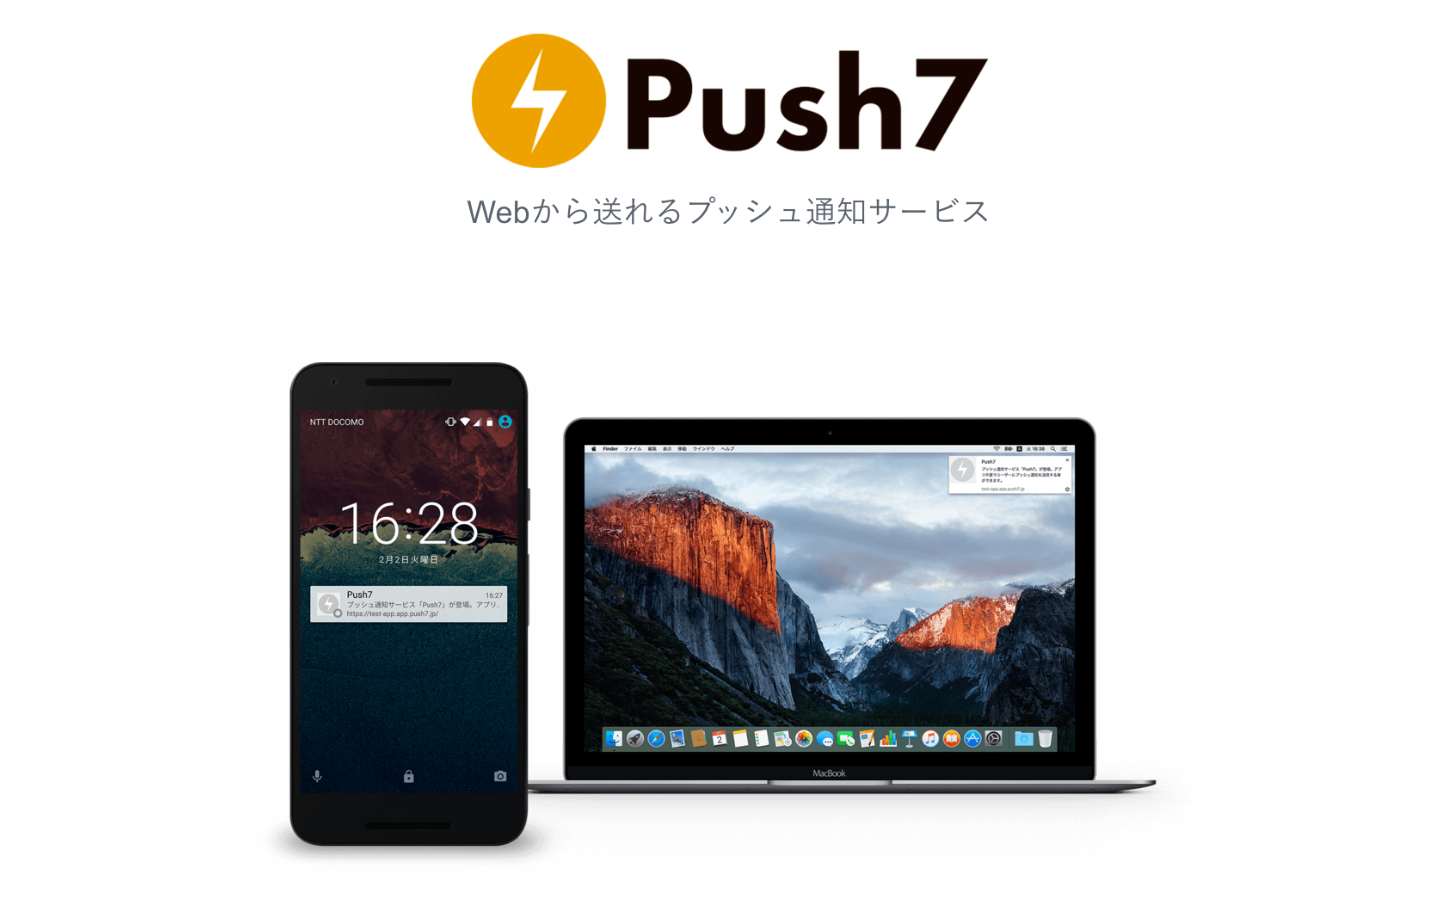 Push7 notifications for web